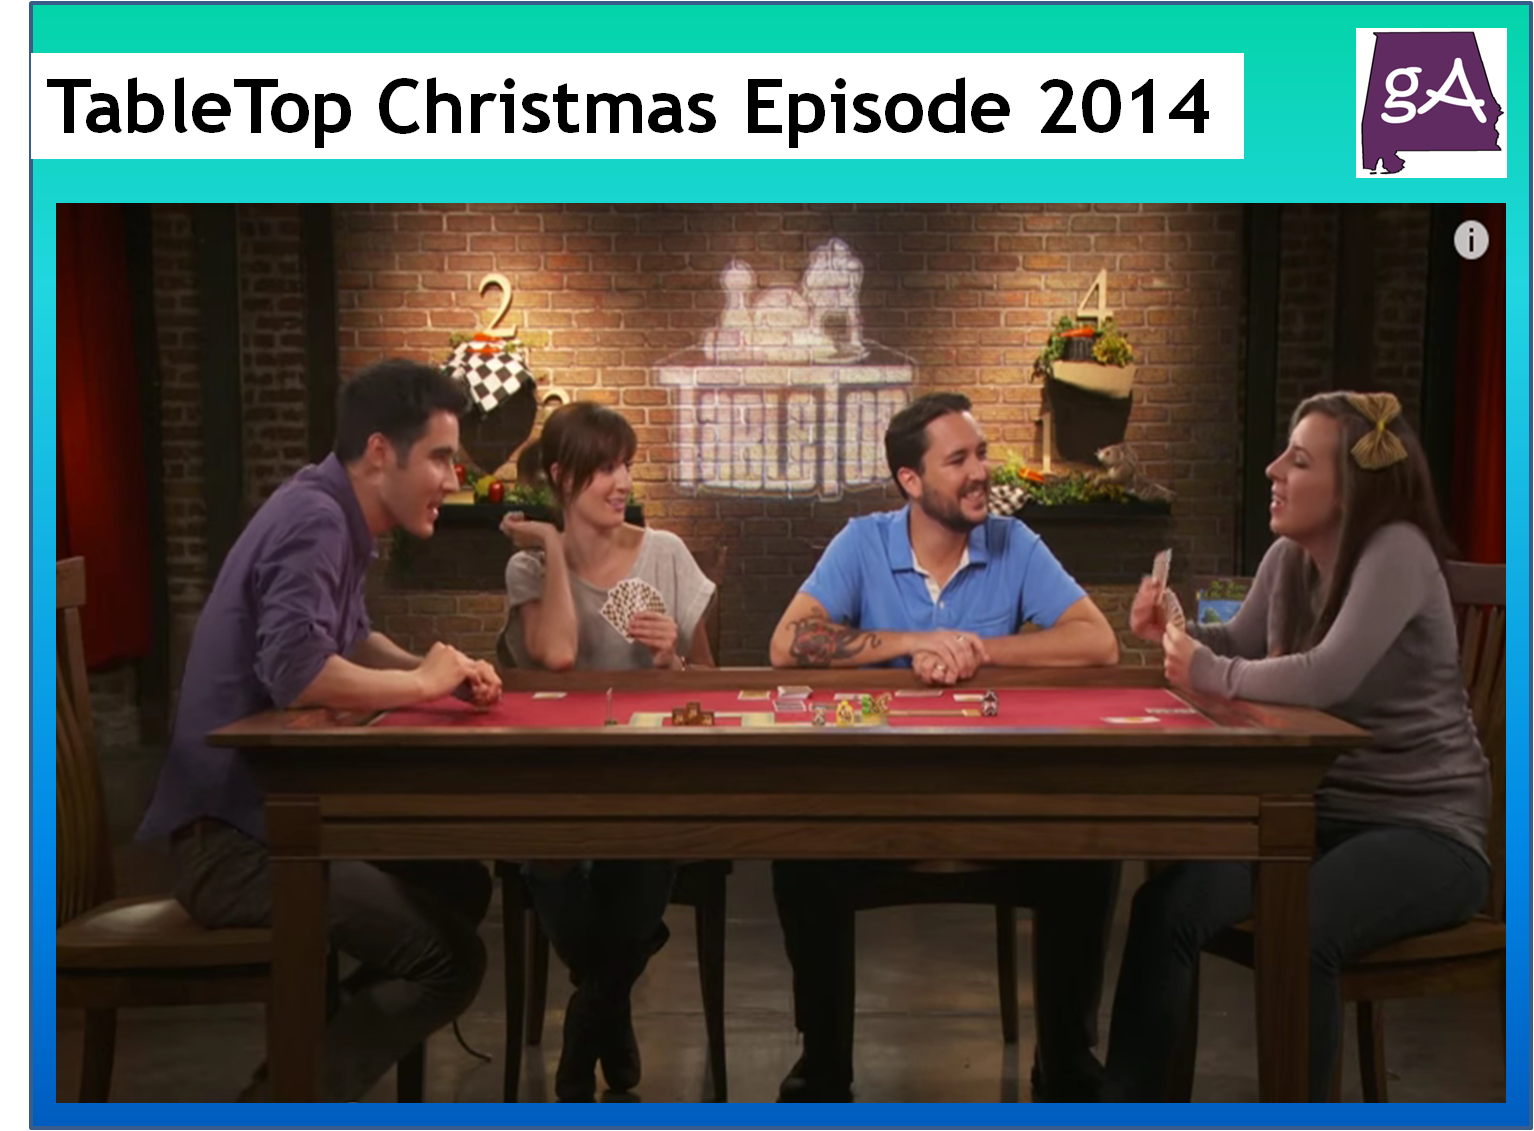 Watch The Special TableTop 2014 Christmas Episode Featuring Two ...